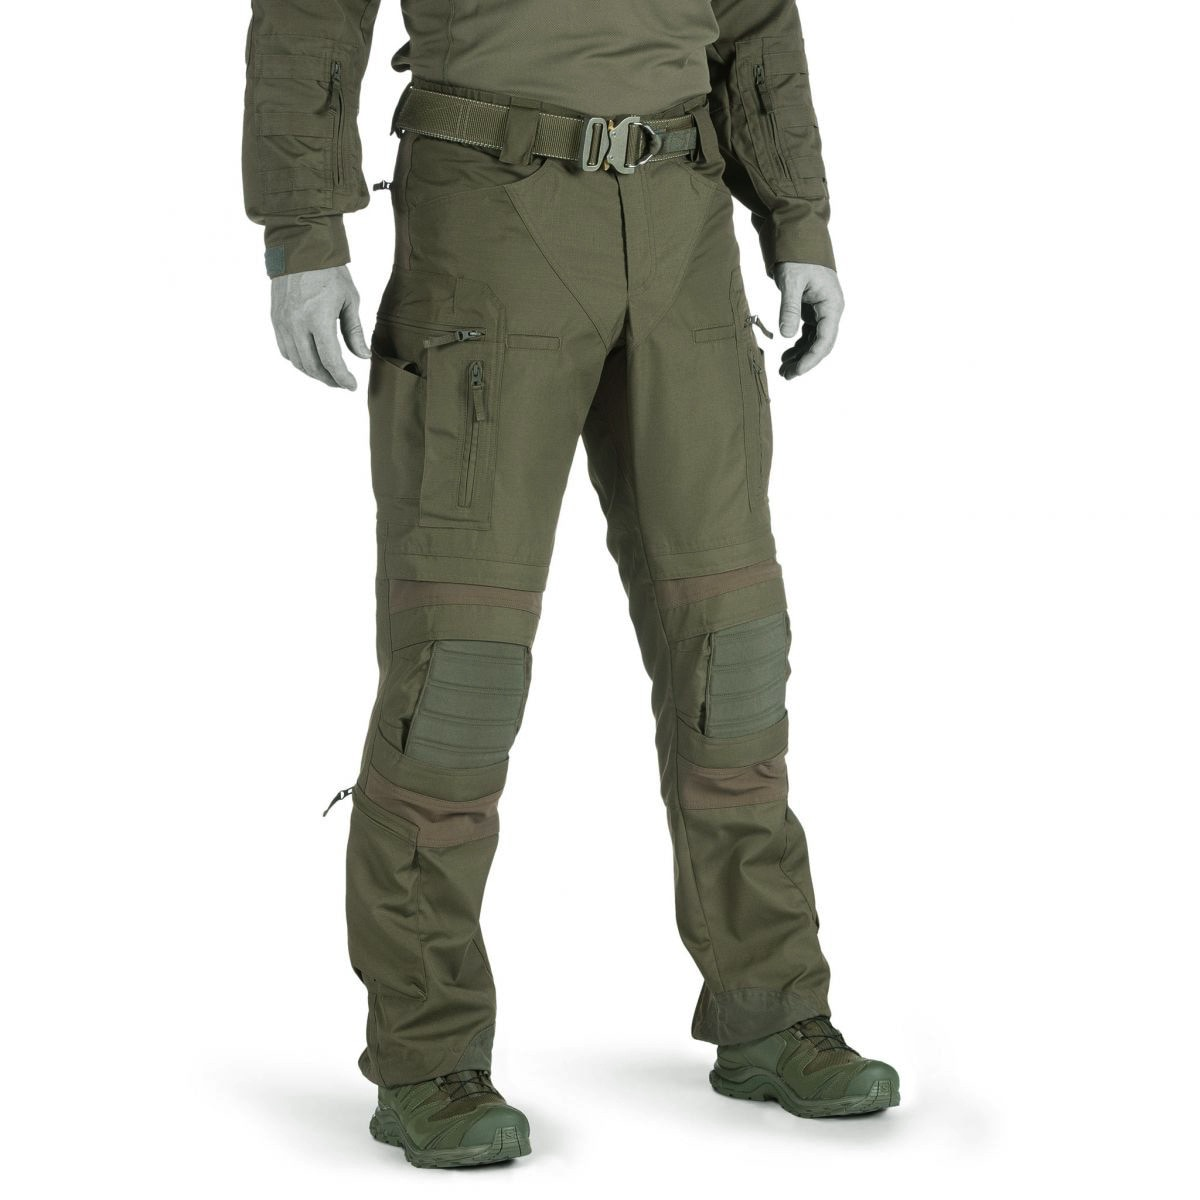 NEW Tactical Pants Military US Army Cargo Pants Work clothes Combat Uniform Paintball Multi Pockets